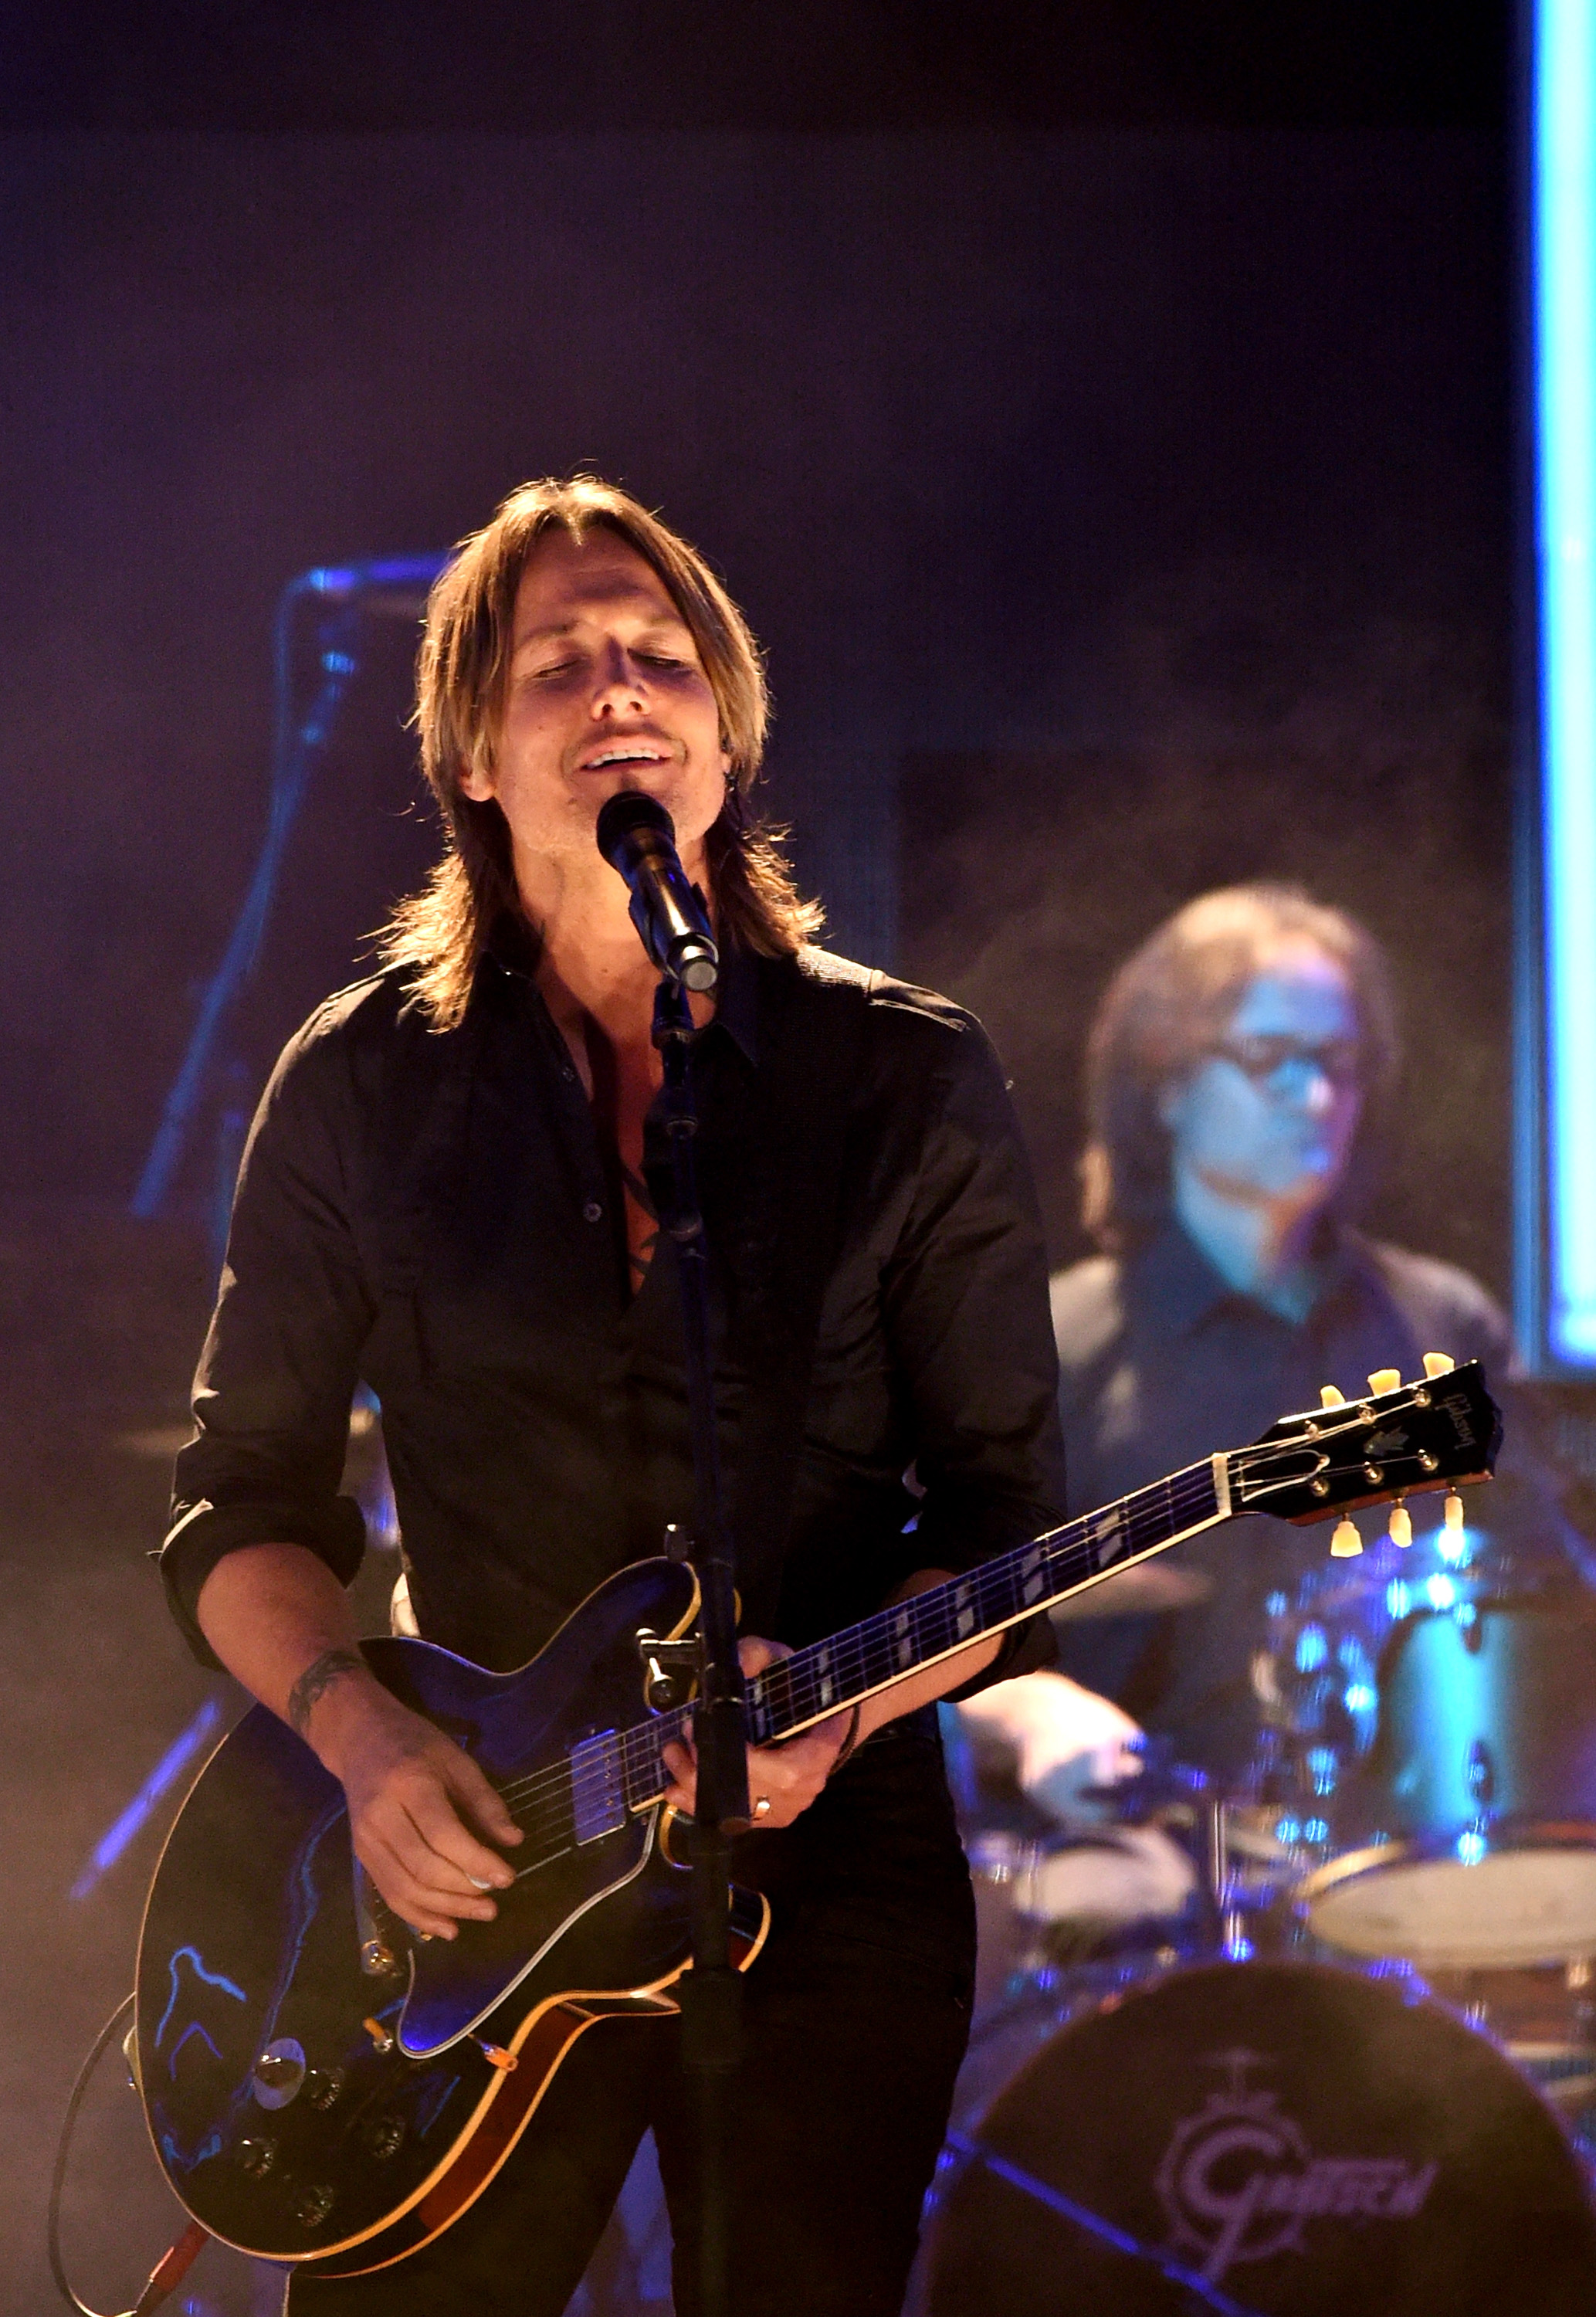 Keith Urban Releases New Song Coming Home News Megacountry